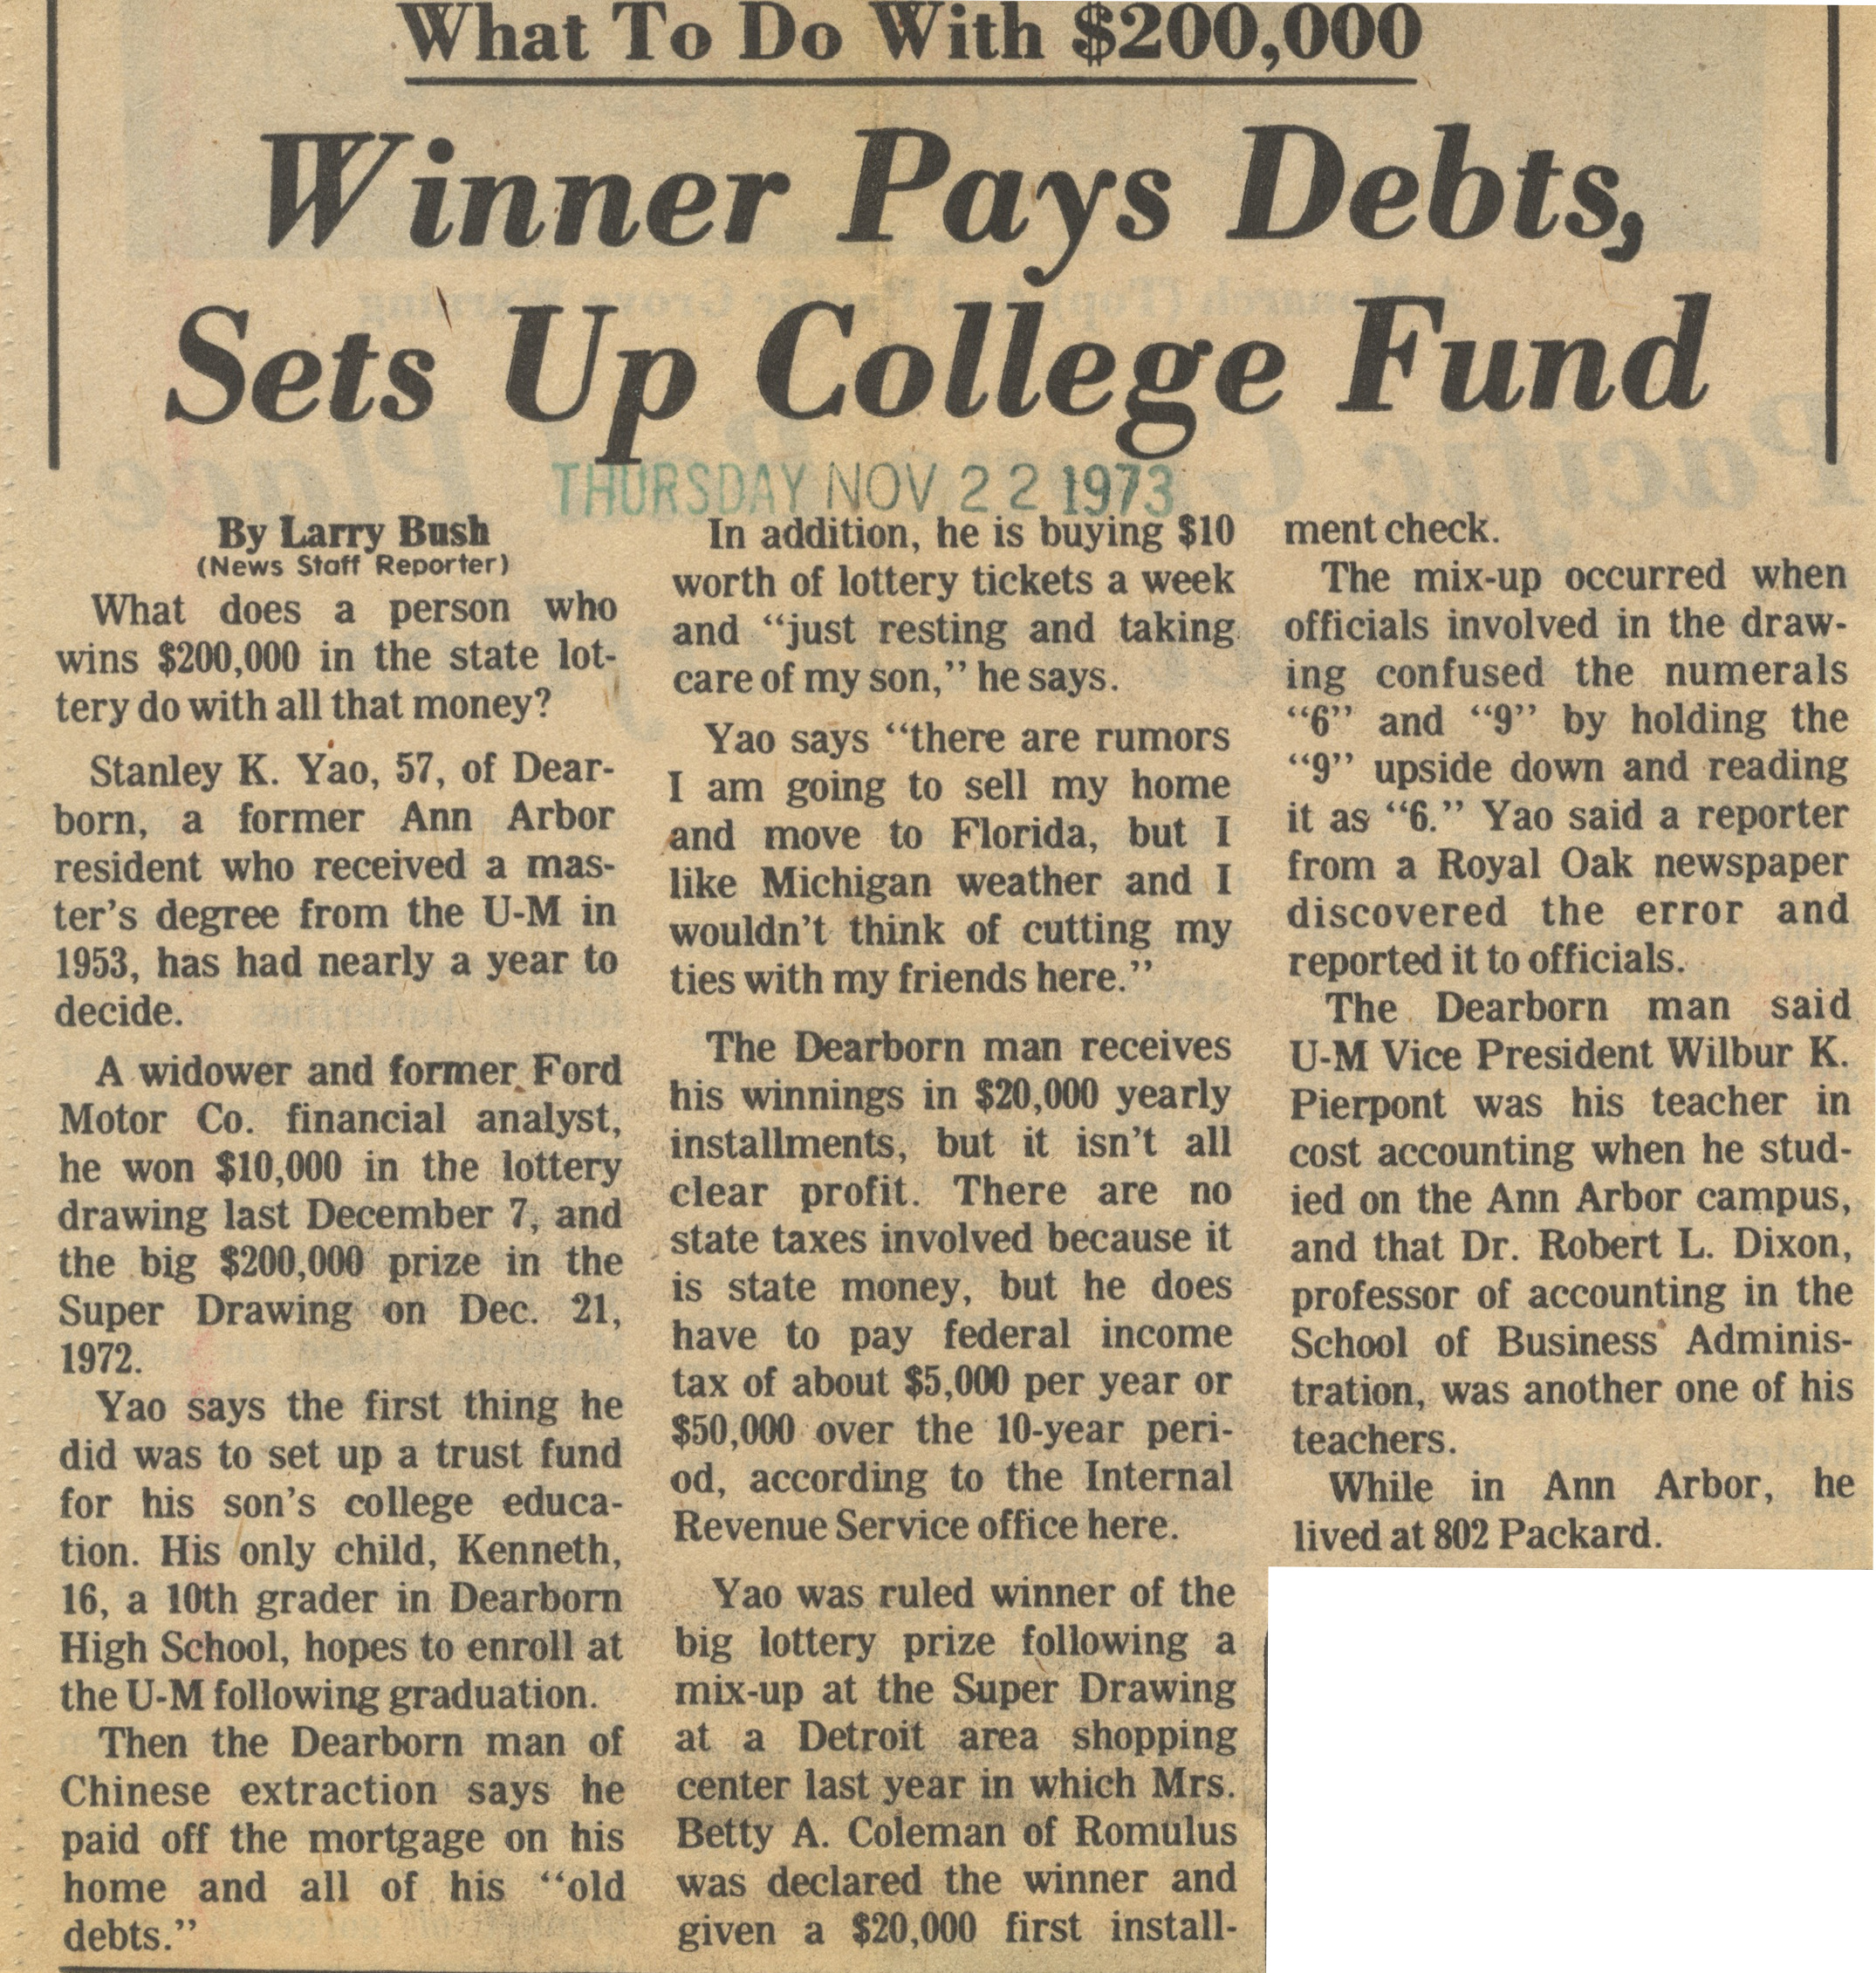 Winner Pays Debts, Sets Up College Fund image